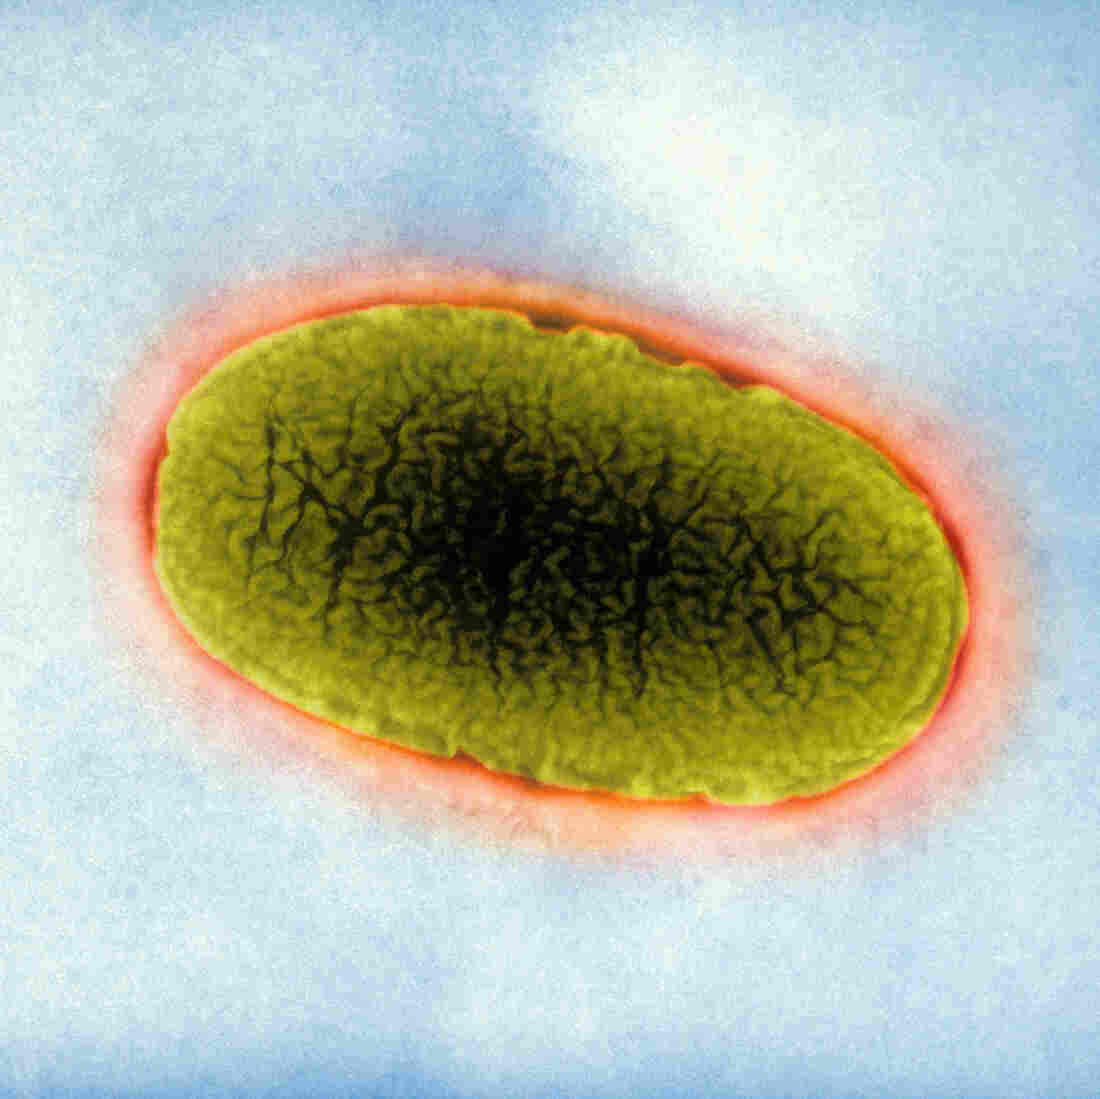 Klebsiella pneumoniae, seen here with an electron microscope, are the most common superbugs causing highly drug-resistant infections in hospitals.